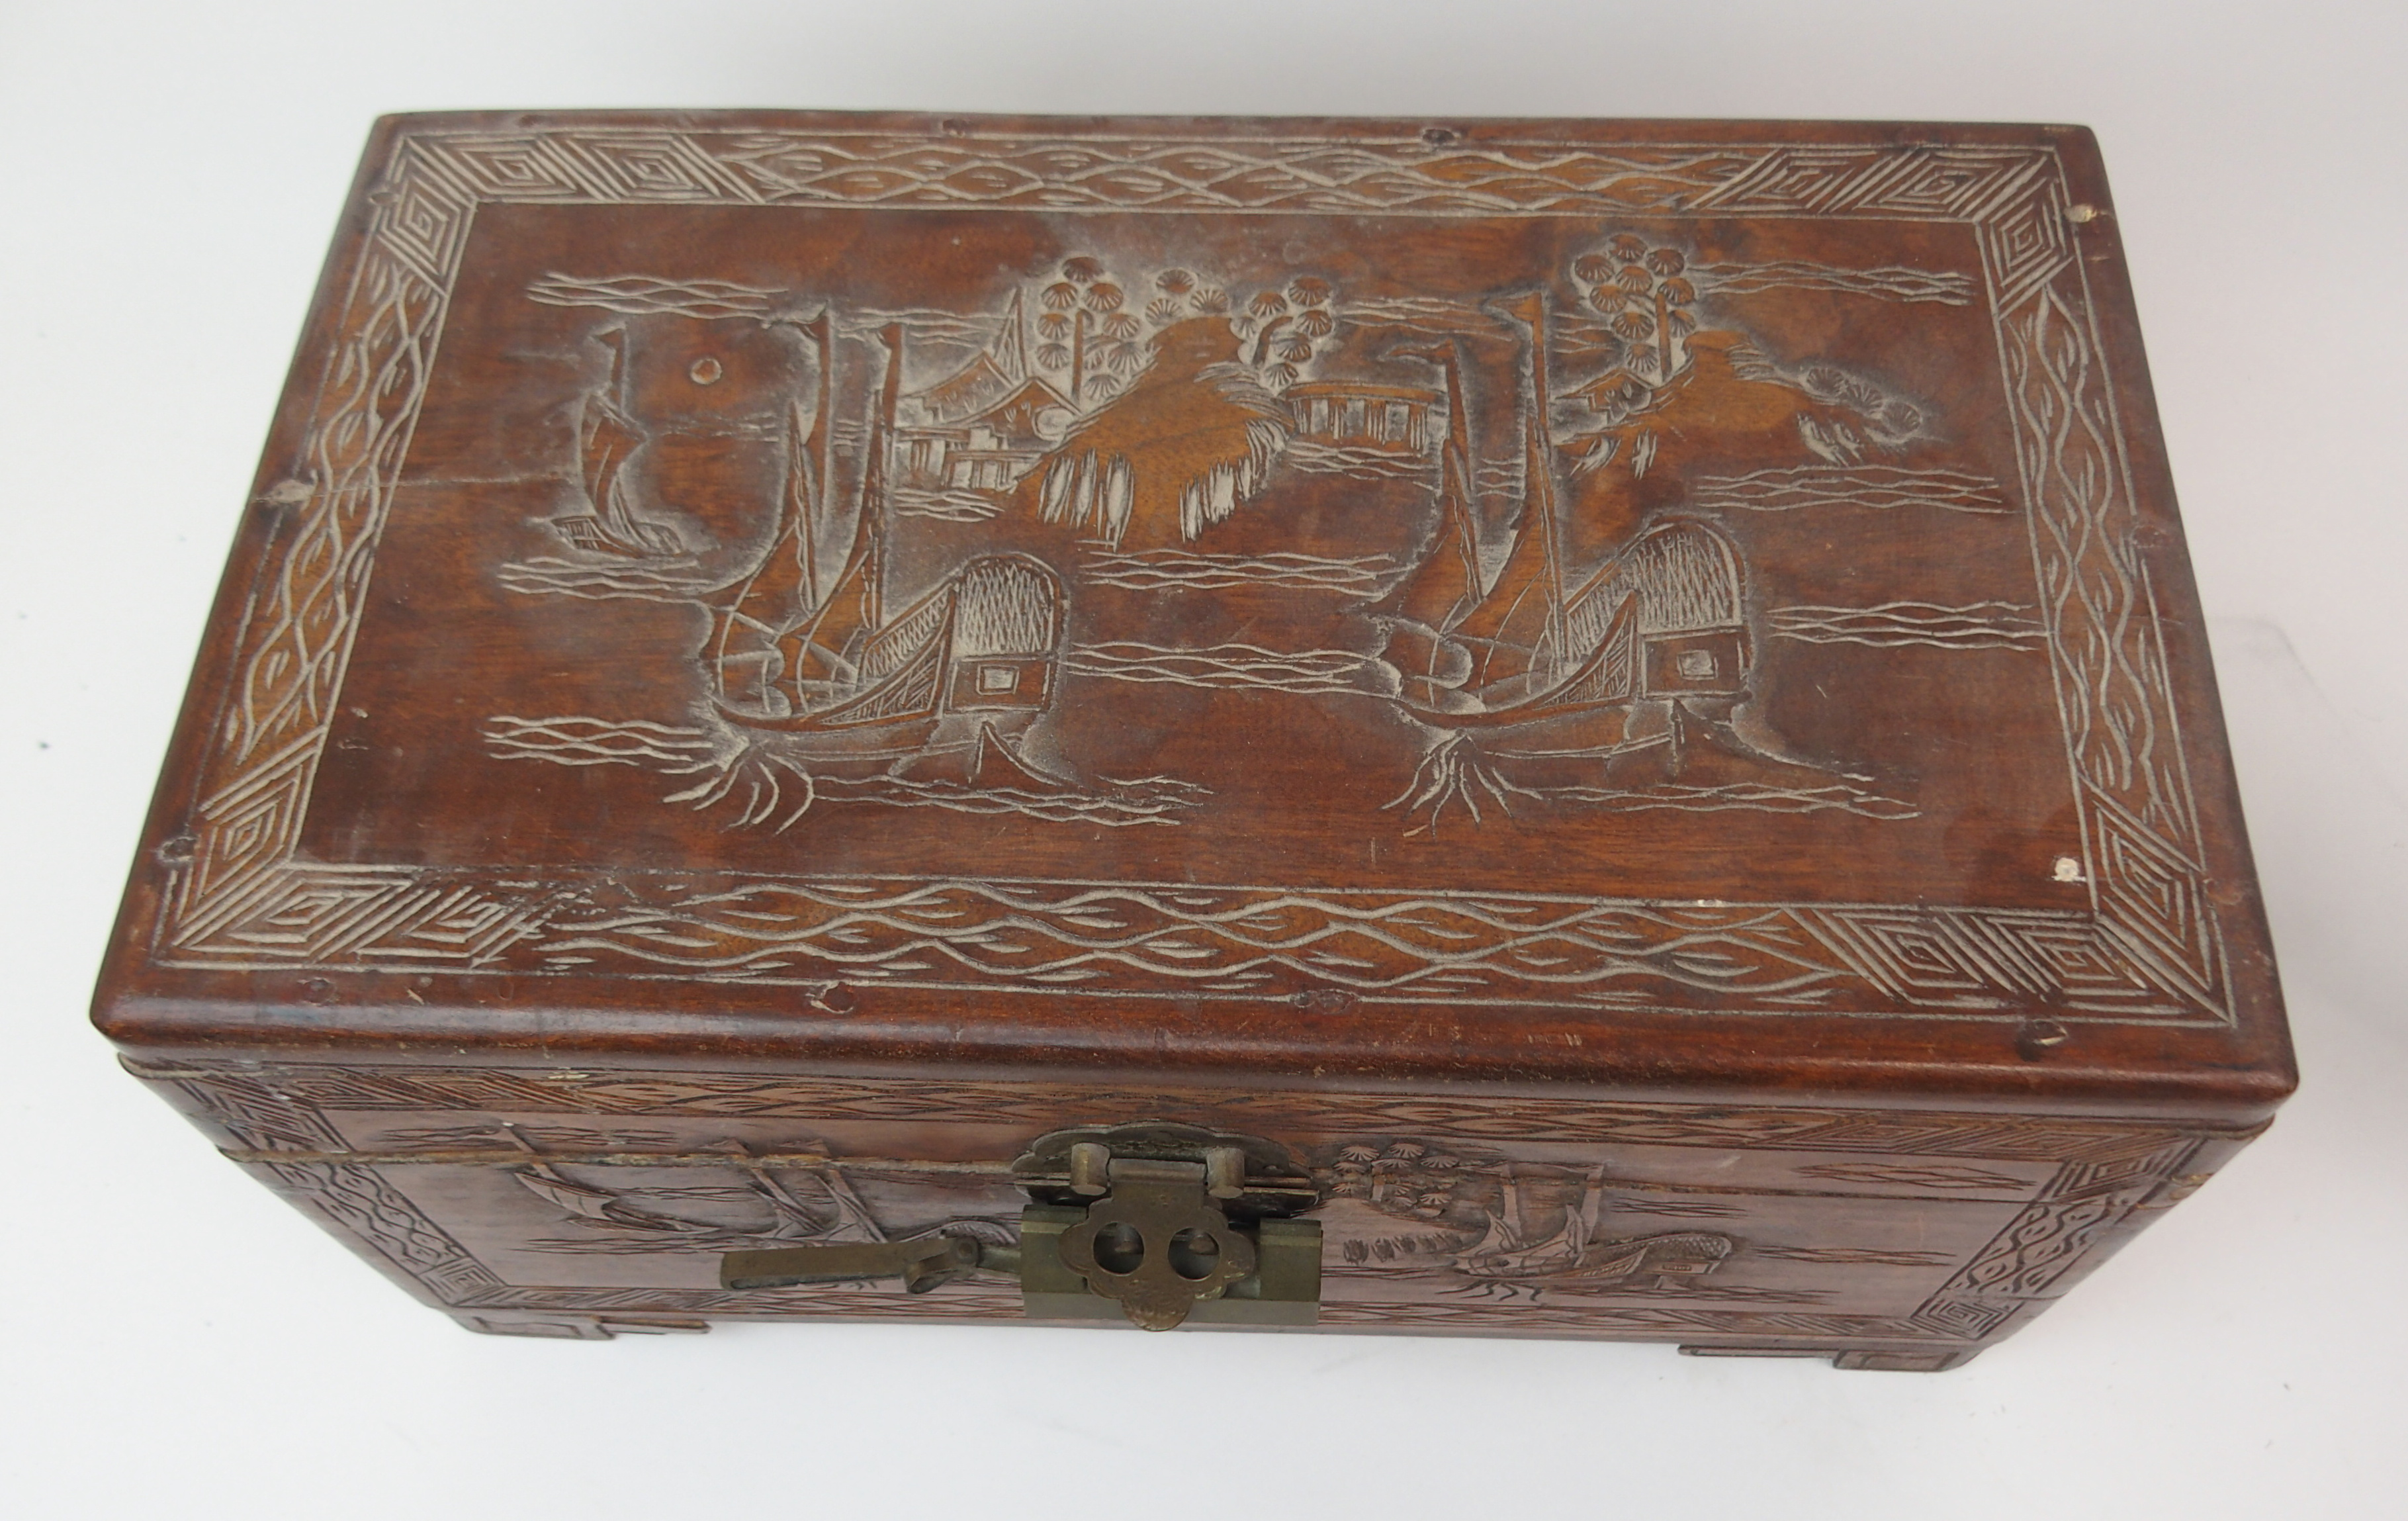 Lot 36 - A CHINESE CARVED BUFFALO HORN SAMPAN with four figures and shelter on board resting on hardwood